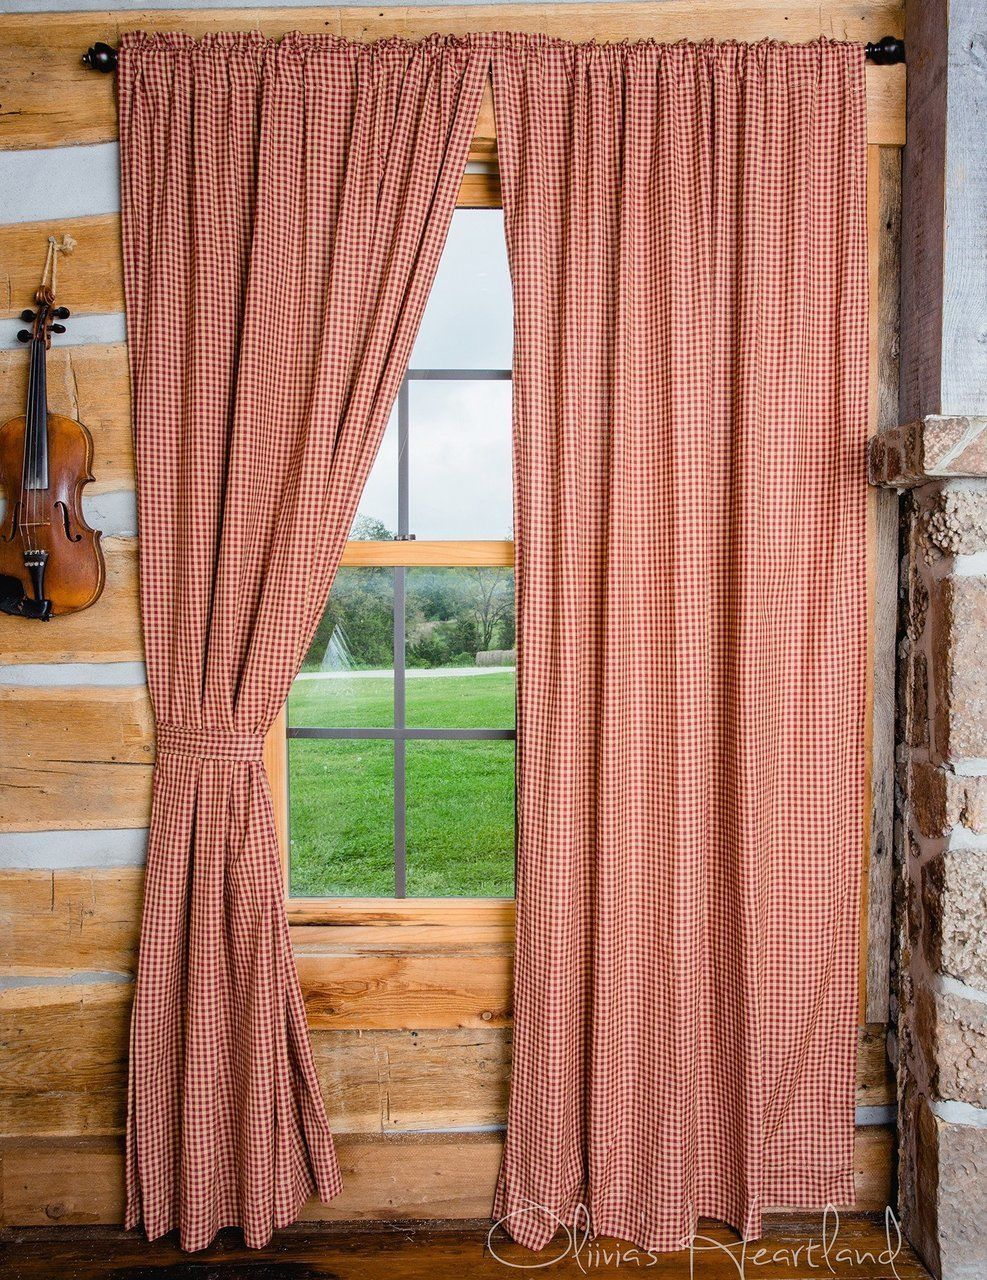 Primary image for Olivia's Heartland country Burgudy Tan Checkered plaid fabric 2 PANEL curtains